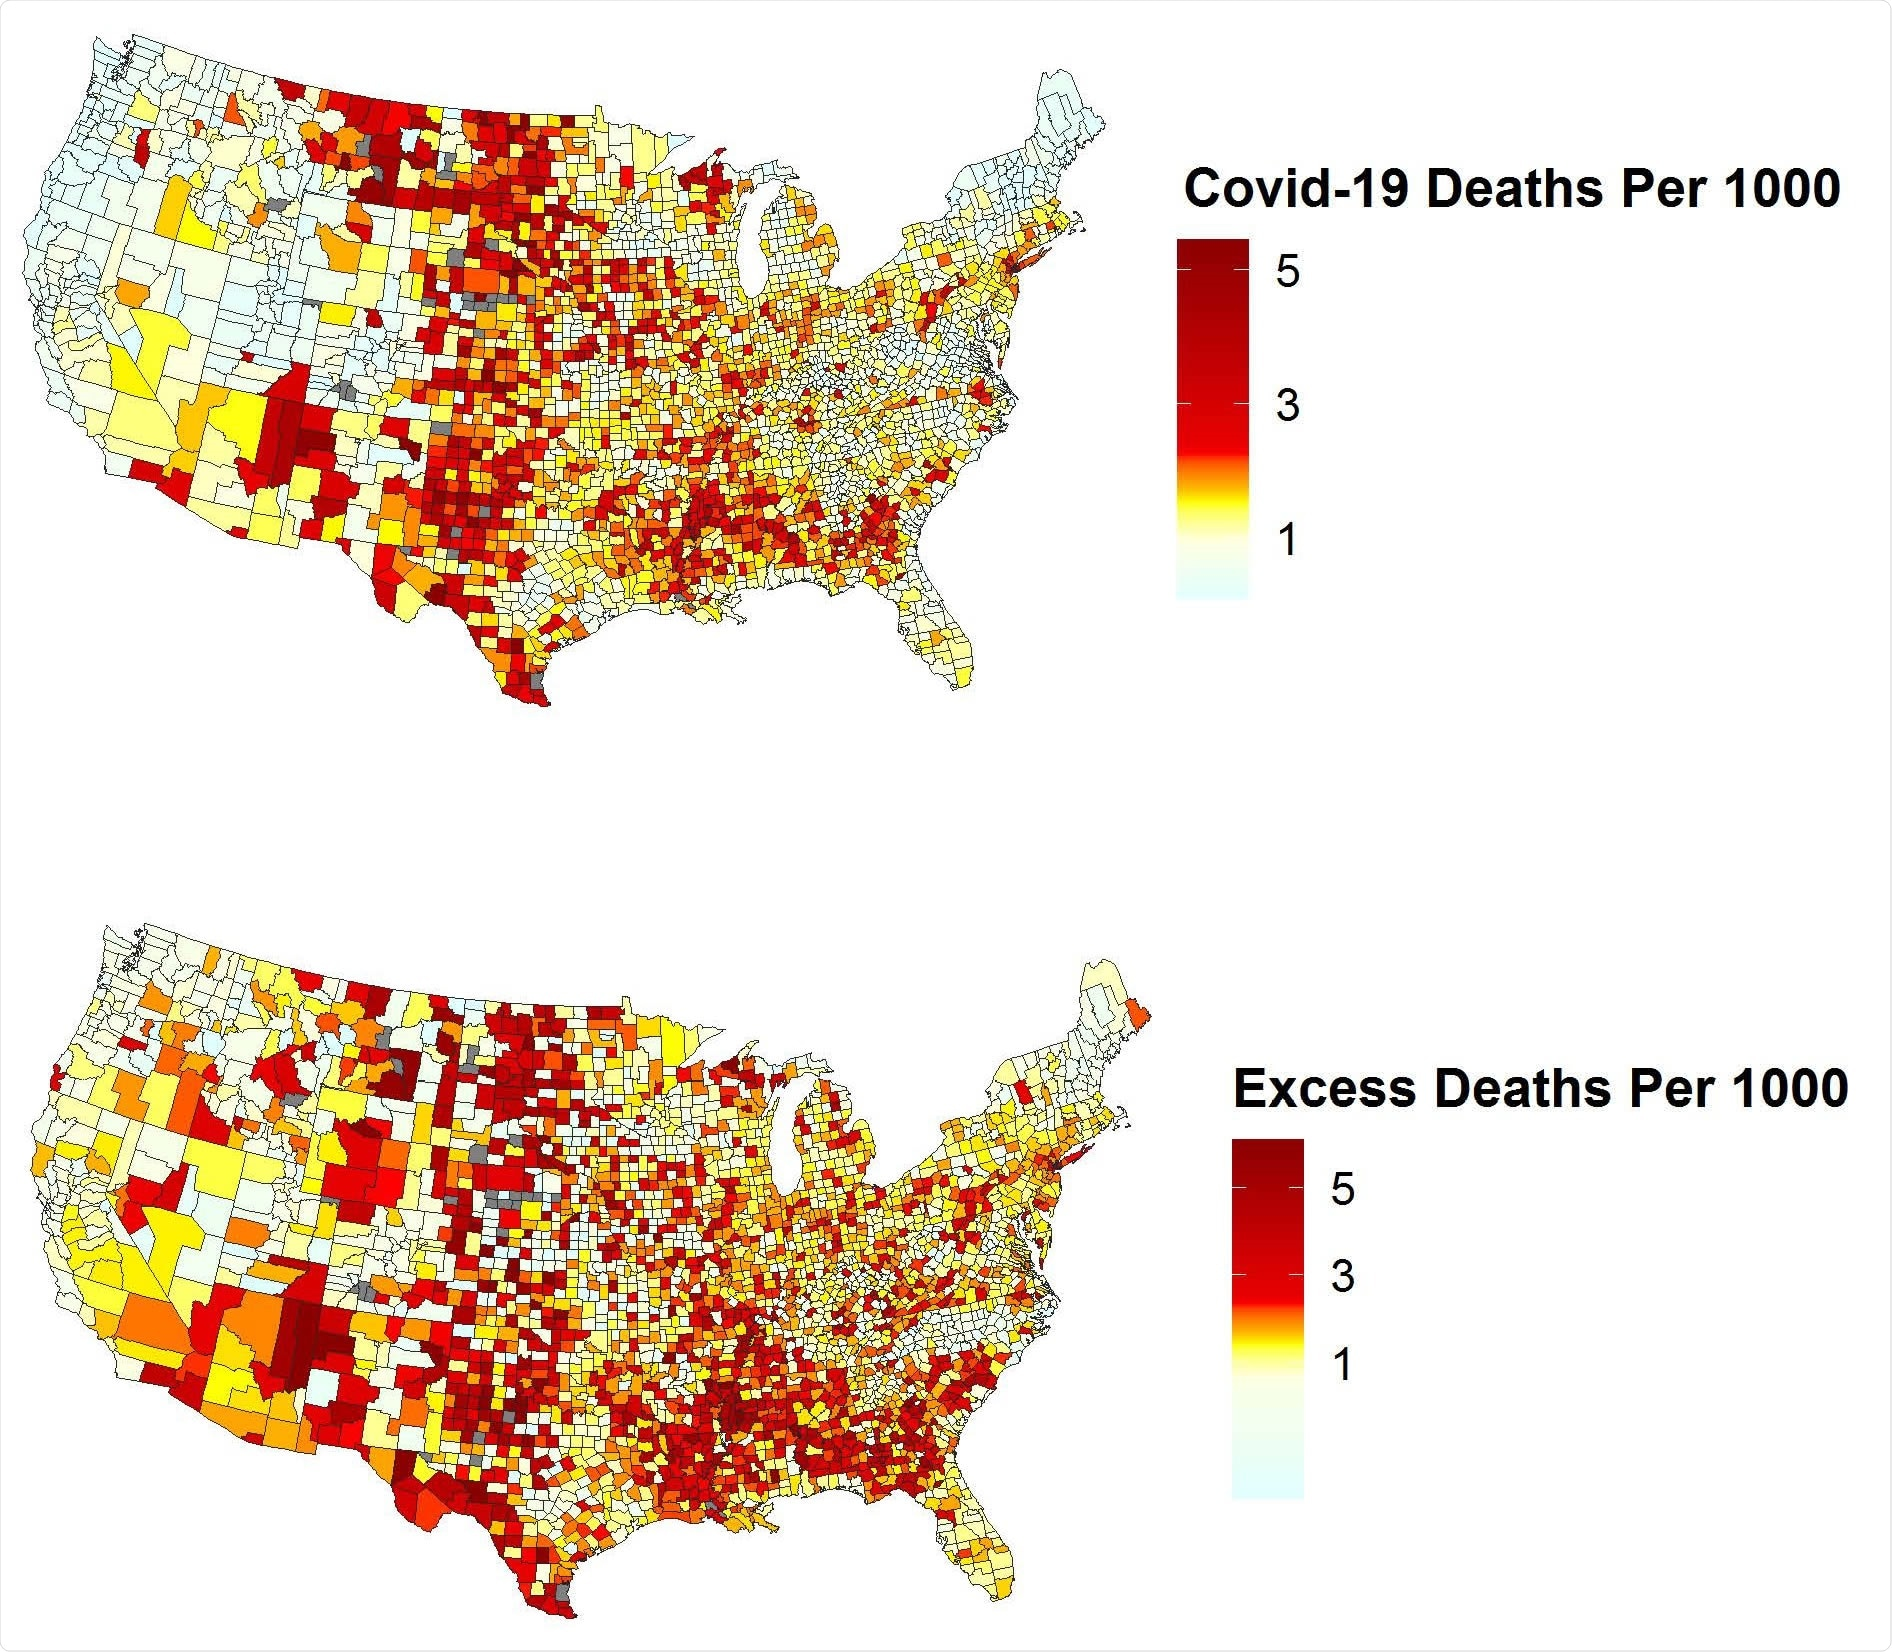 COVID-19 Deaths by County (Per 1000 Person-Years). Heat maps of direct COVID-19 deaths per 1000 person-years by county (top) and excess death rate per 1000 person-years by county (bottom). Numbers are based on provisional data from the National Center for Health Statistics (NCHS) on COVID-19 mortality by county of residence from January 1 to December 31, 2020 reported by April 21, 2021. Note that estimates for counties in North Carolina may be unreliable due to reporting lags.